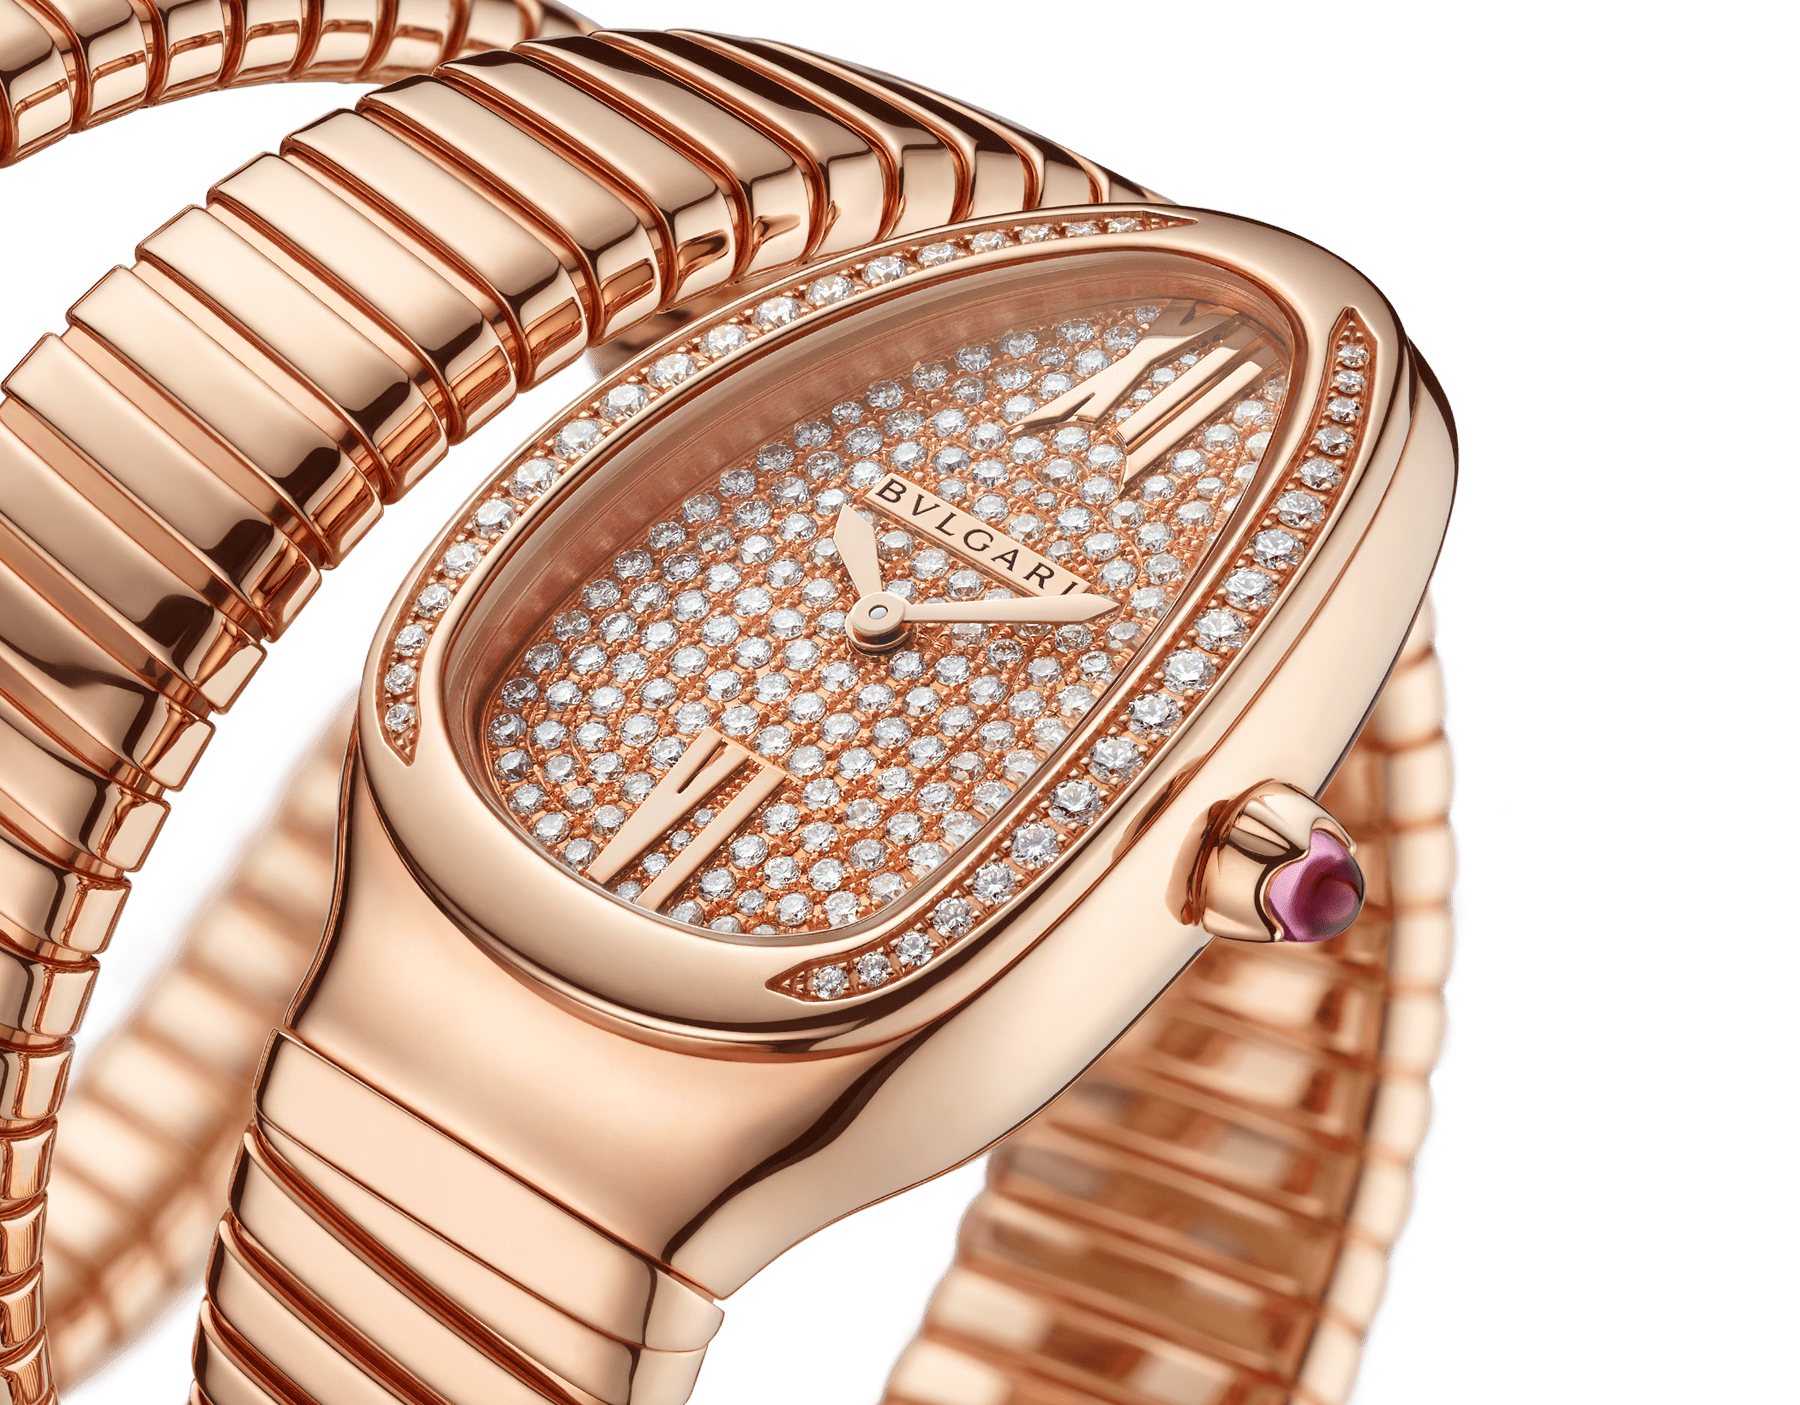 Serpenti Tubogas double spiral watch with 18 kt rose gold case set with brilliant cut diamonds, 18 kt rose gold dial set with full pavé brilliant cut diamonds and 18 kt rose gold bracelet. 101956 image 3